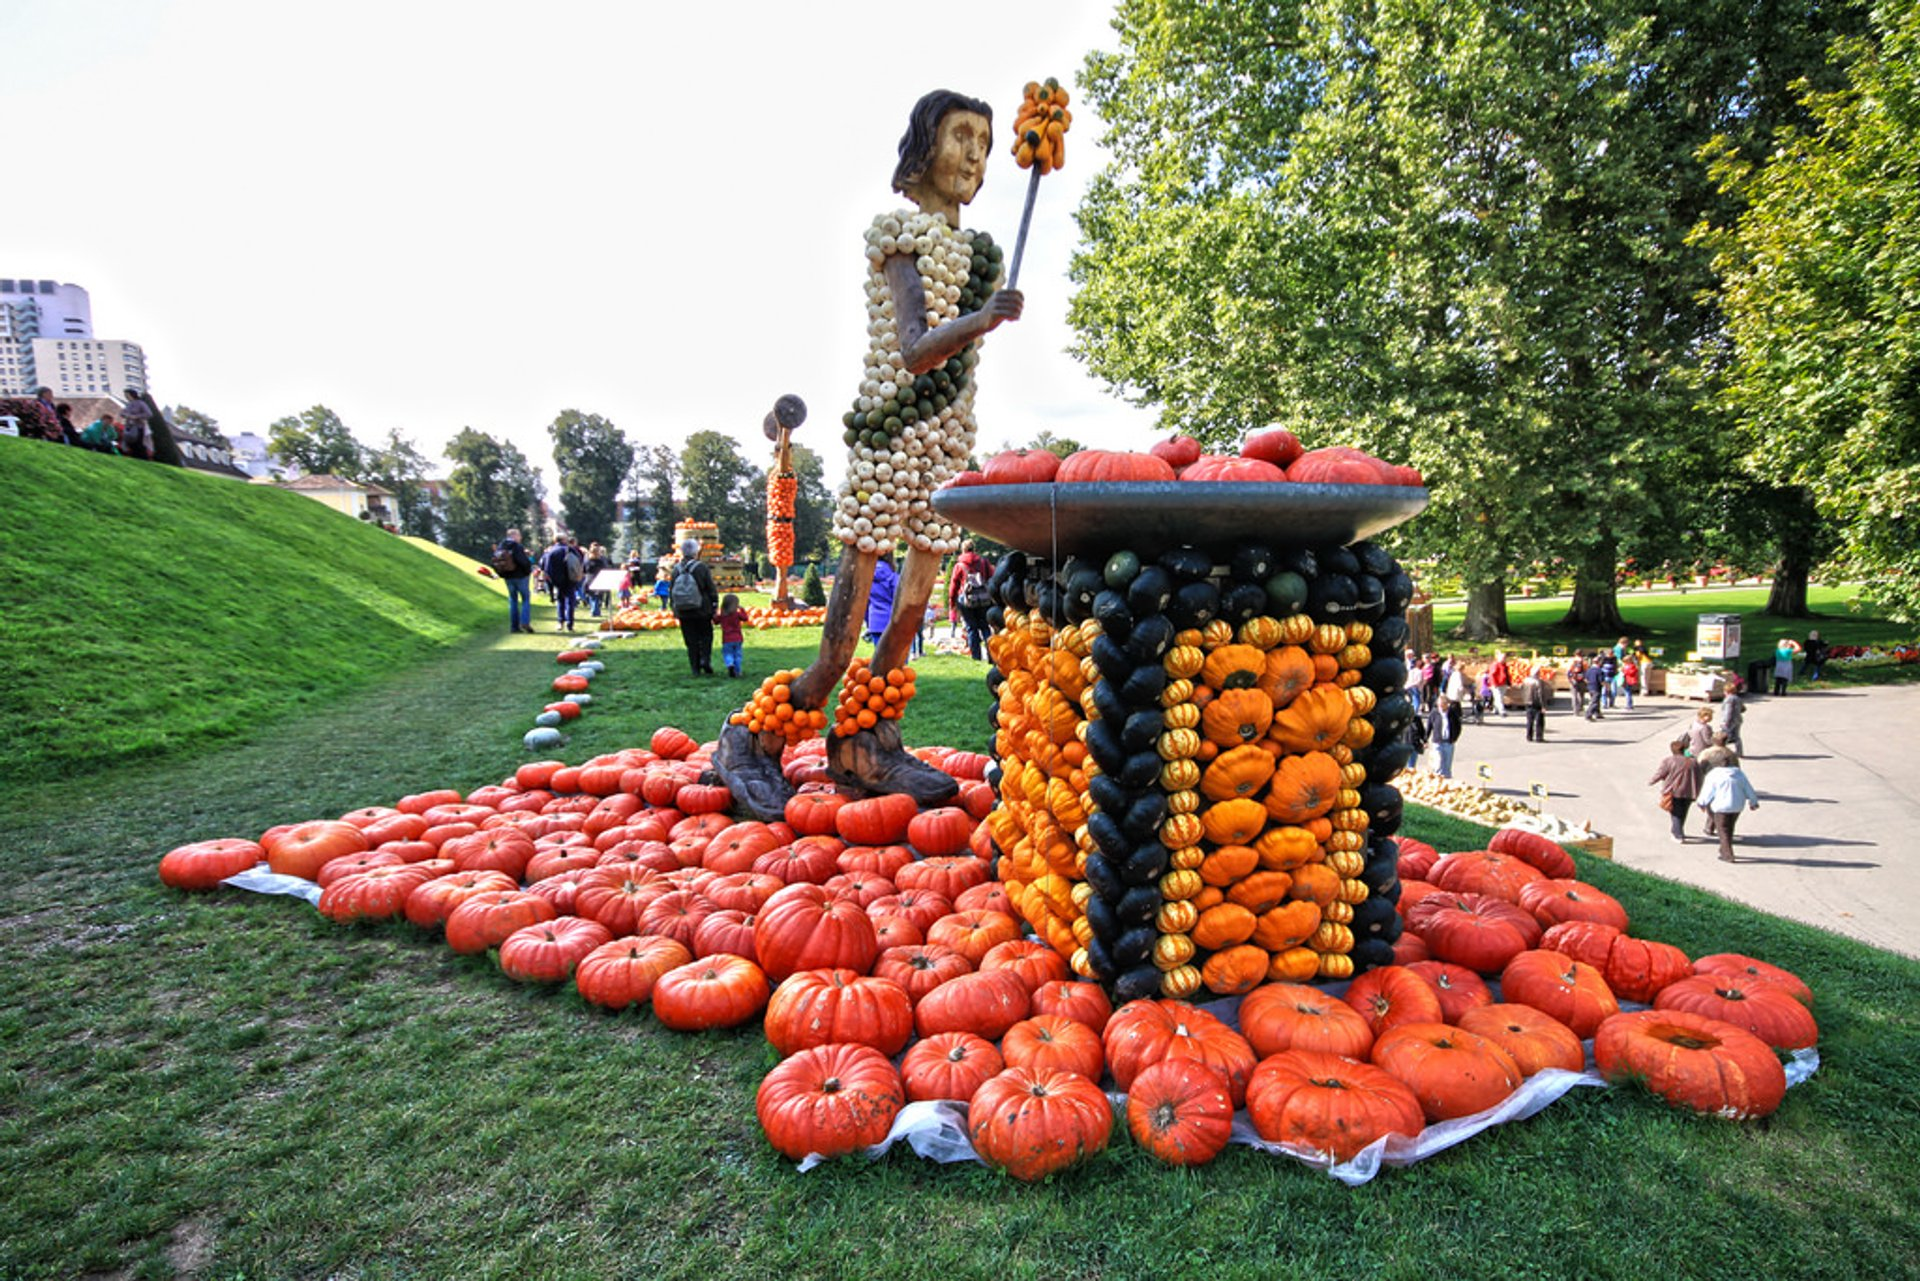 Best time for Ludwigsburg Pumpkin Festival in Germany 2019